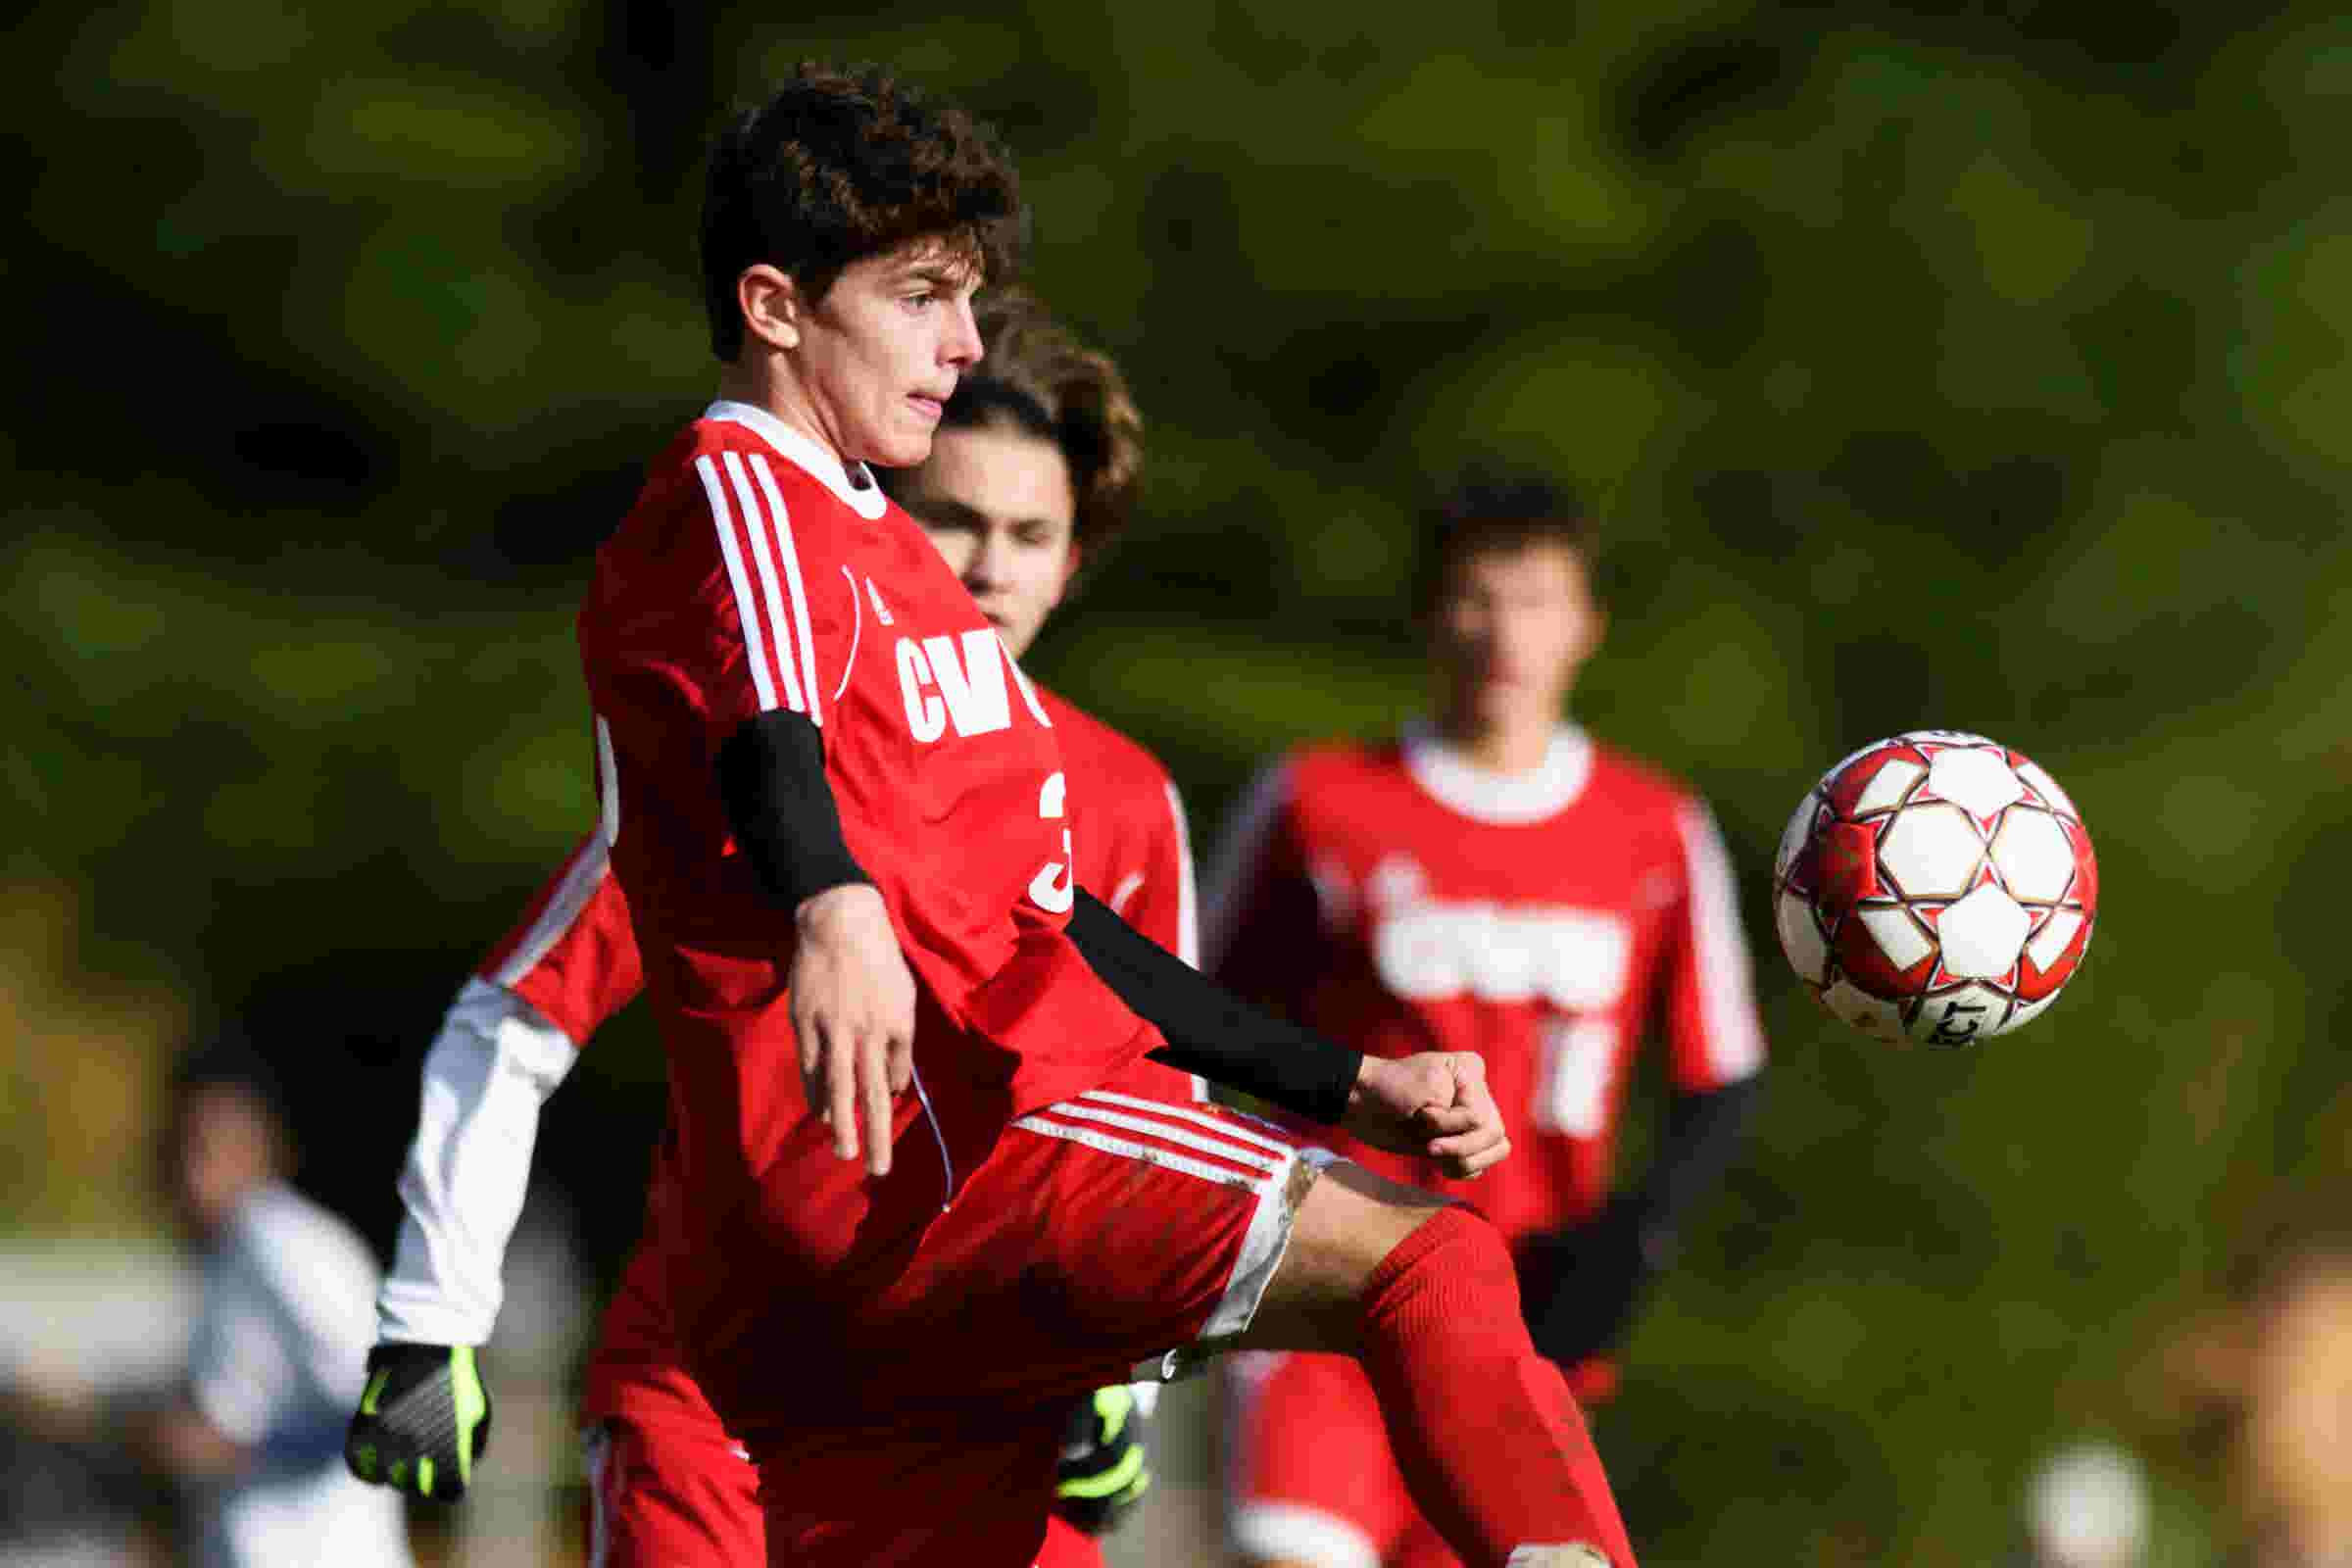 Vermont sports scores for Monday, October 14: See how your favorite team fared